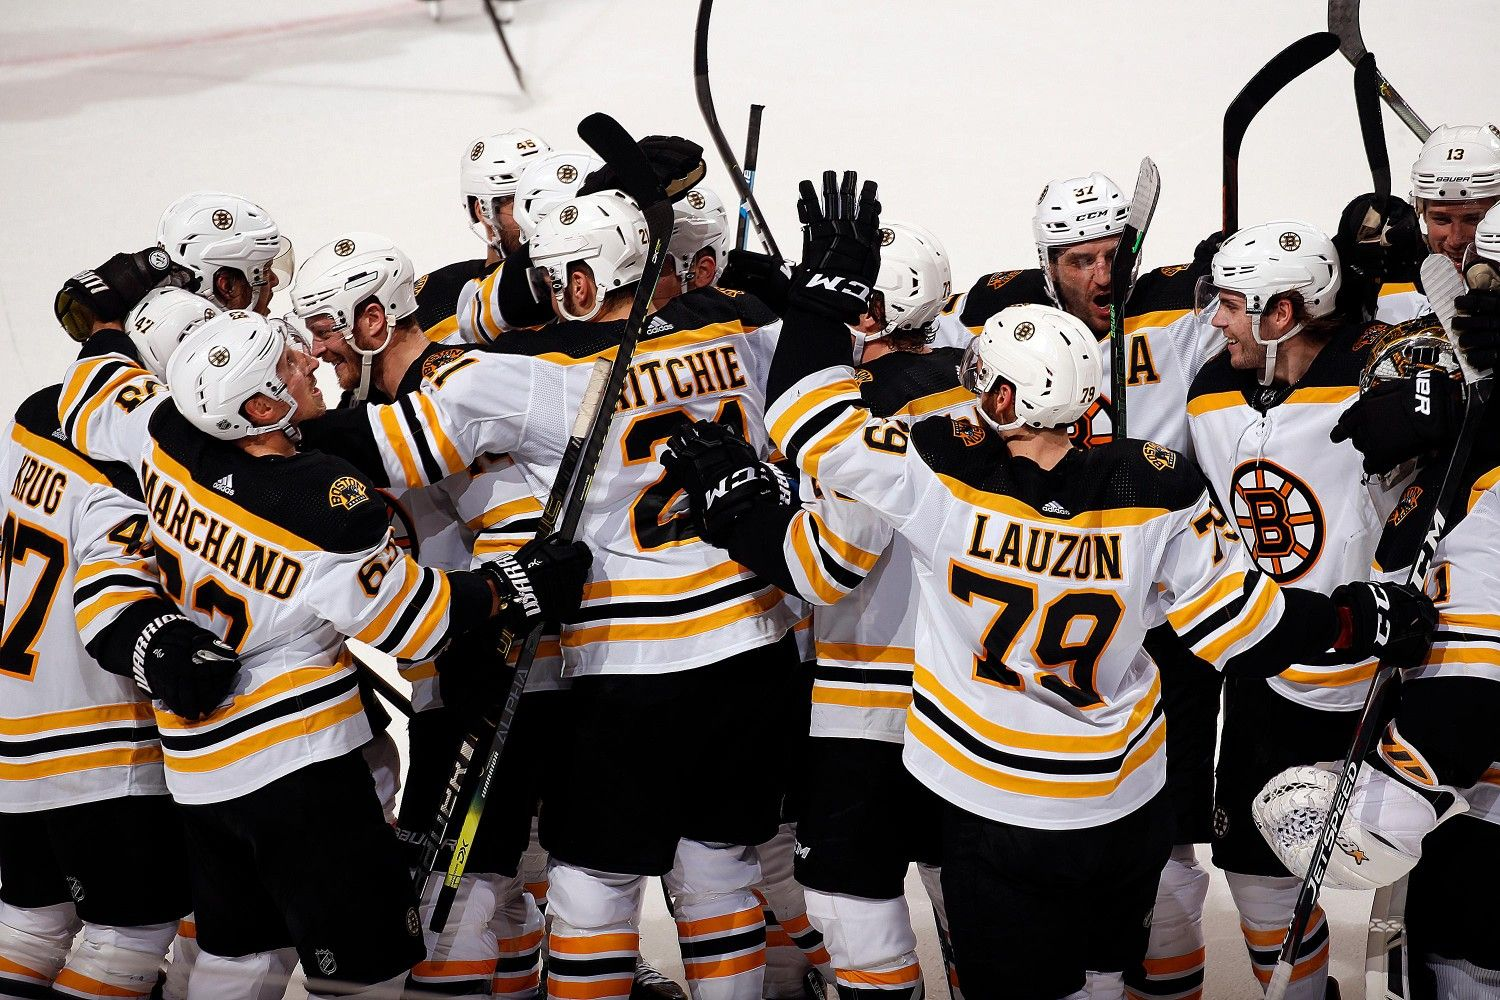 Boston Bruins Victorious Over Tb Lightning 3 3 20 In 2020 Boston Bruins Boston Bruins Wallpaper Boston Bruins Funny